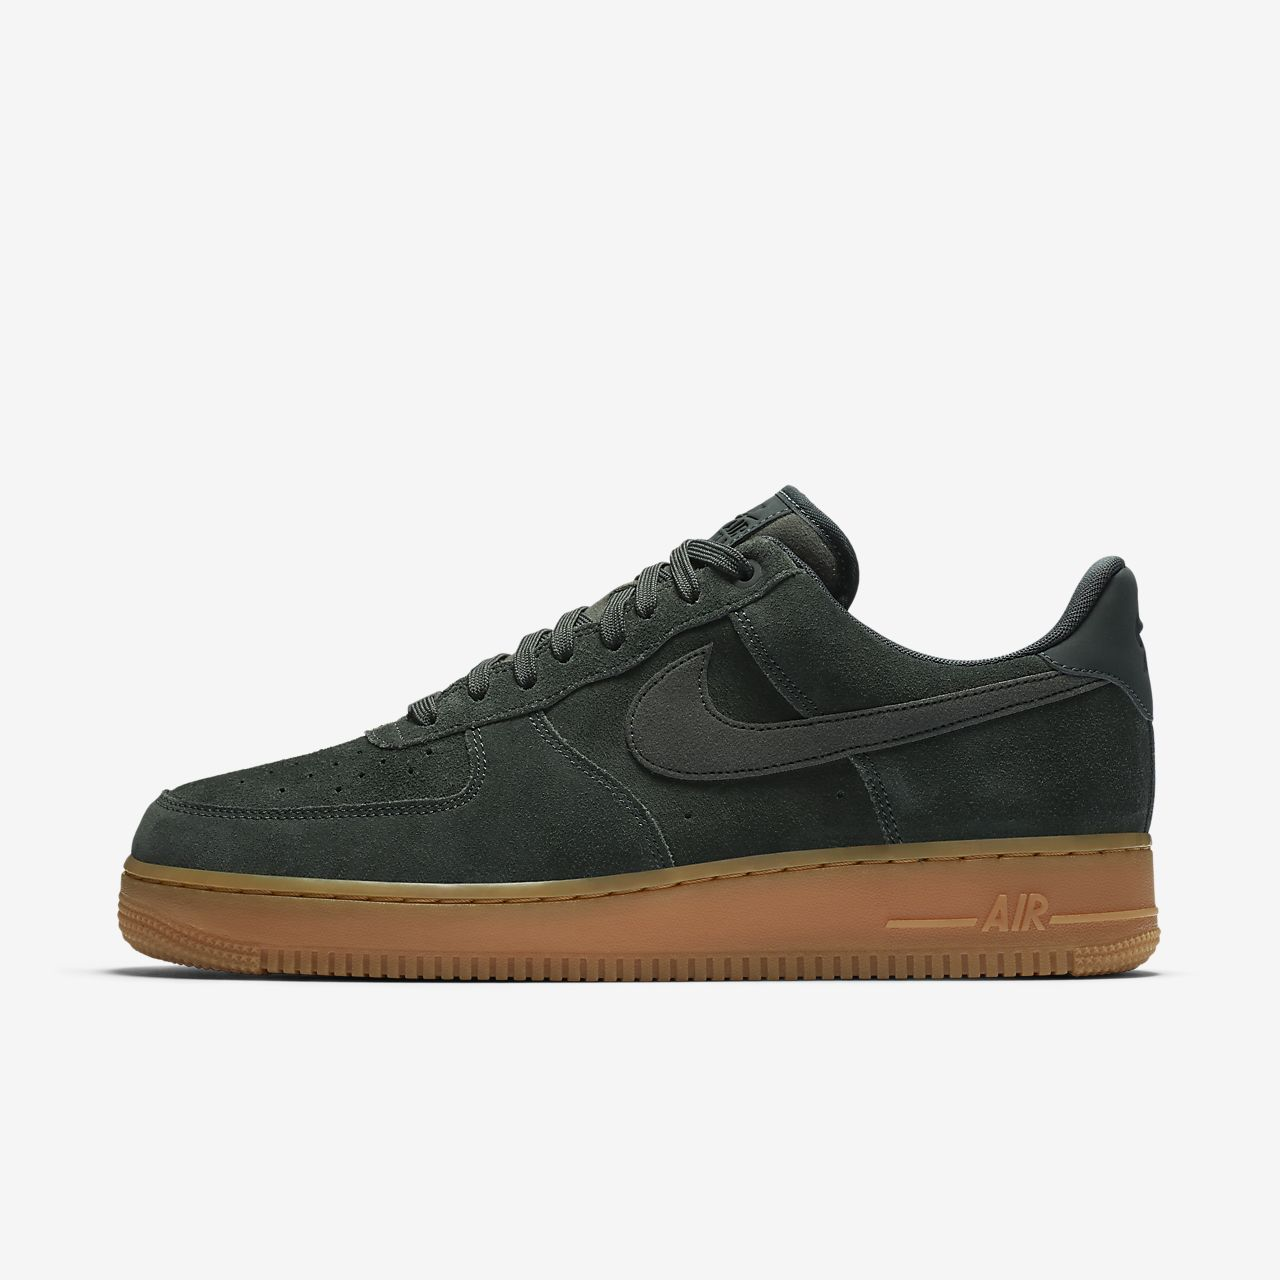 air force one 1 07 lv8 suede, ... Nike Air Force 1 07 LV8 Suede Men's Shoe